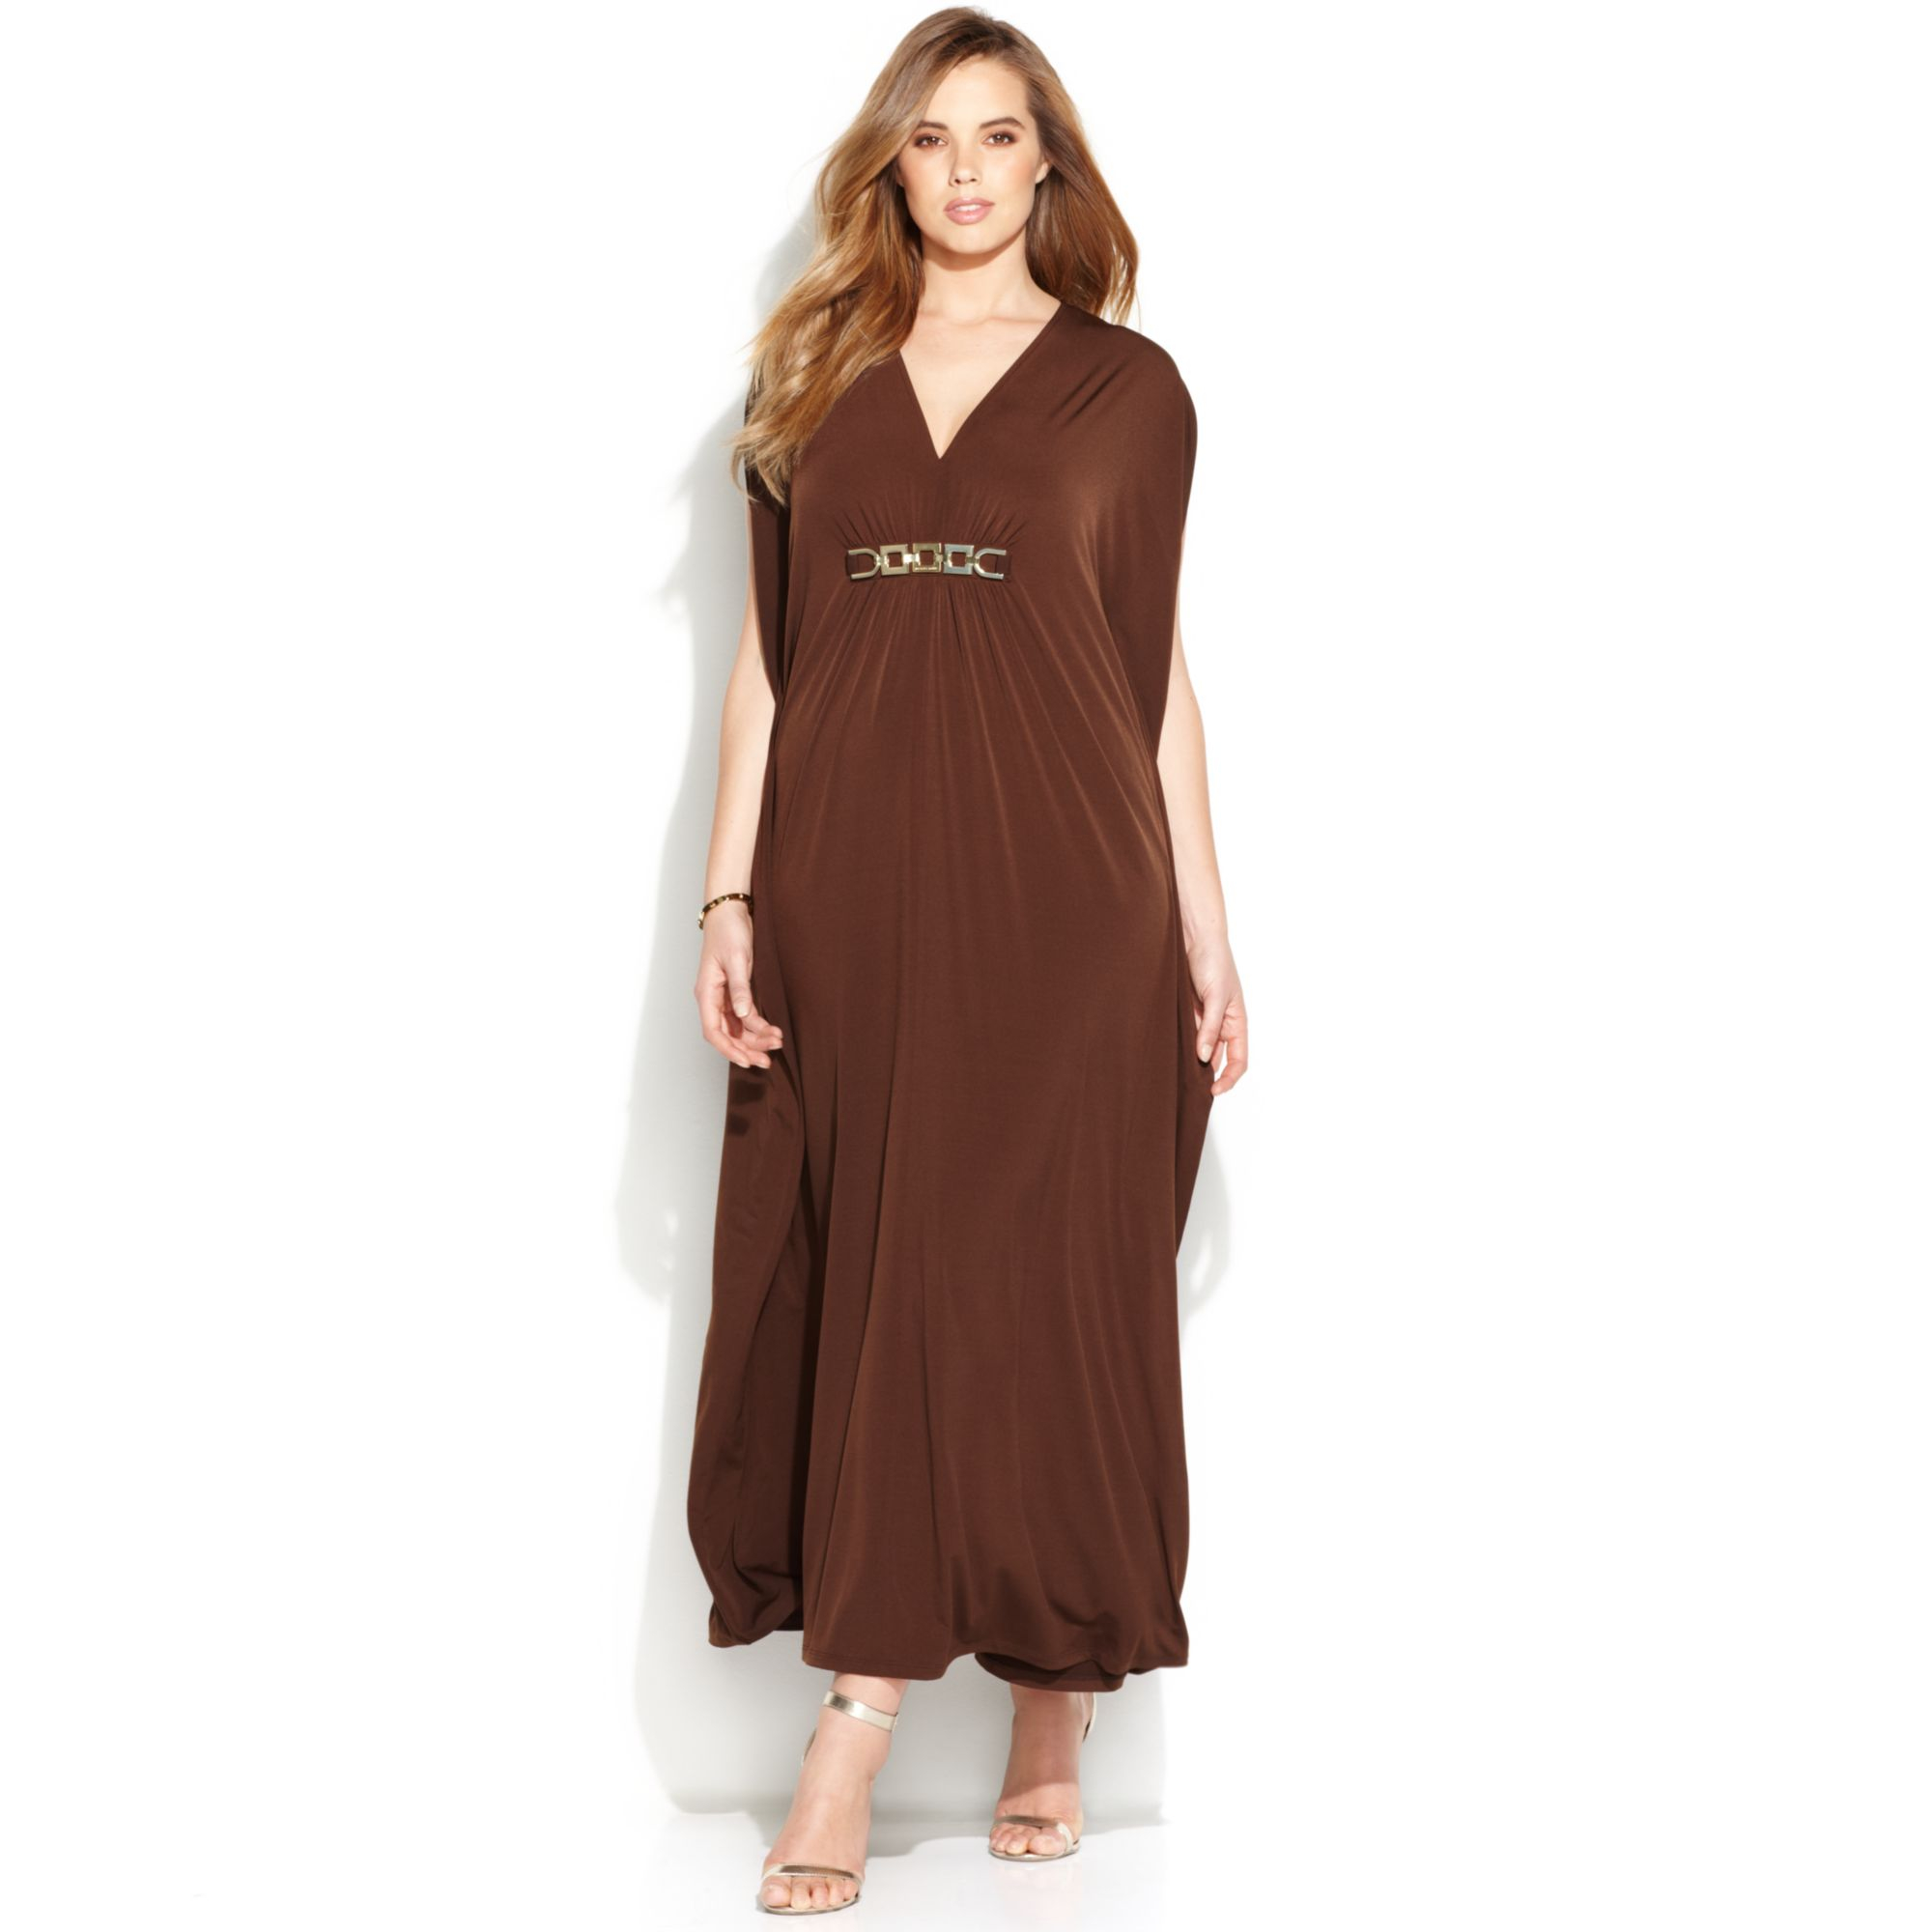 Chocolate Brown Plus Size Dresses – Fashion dresses